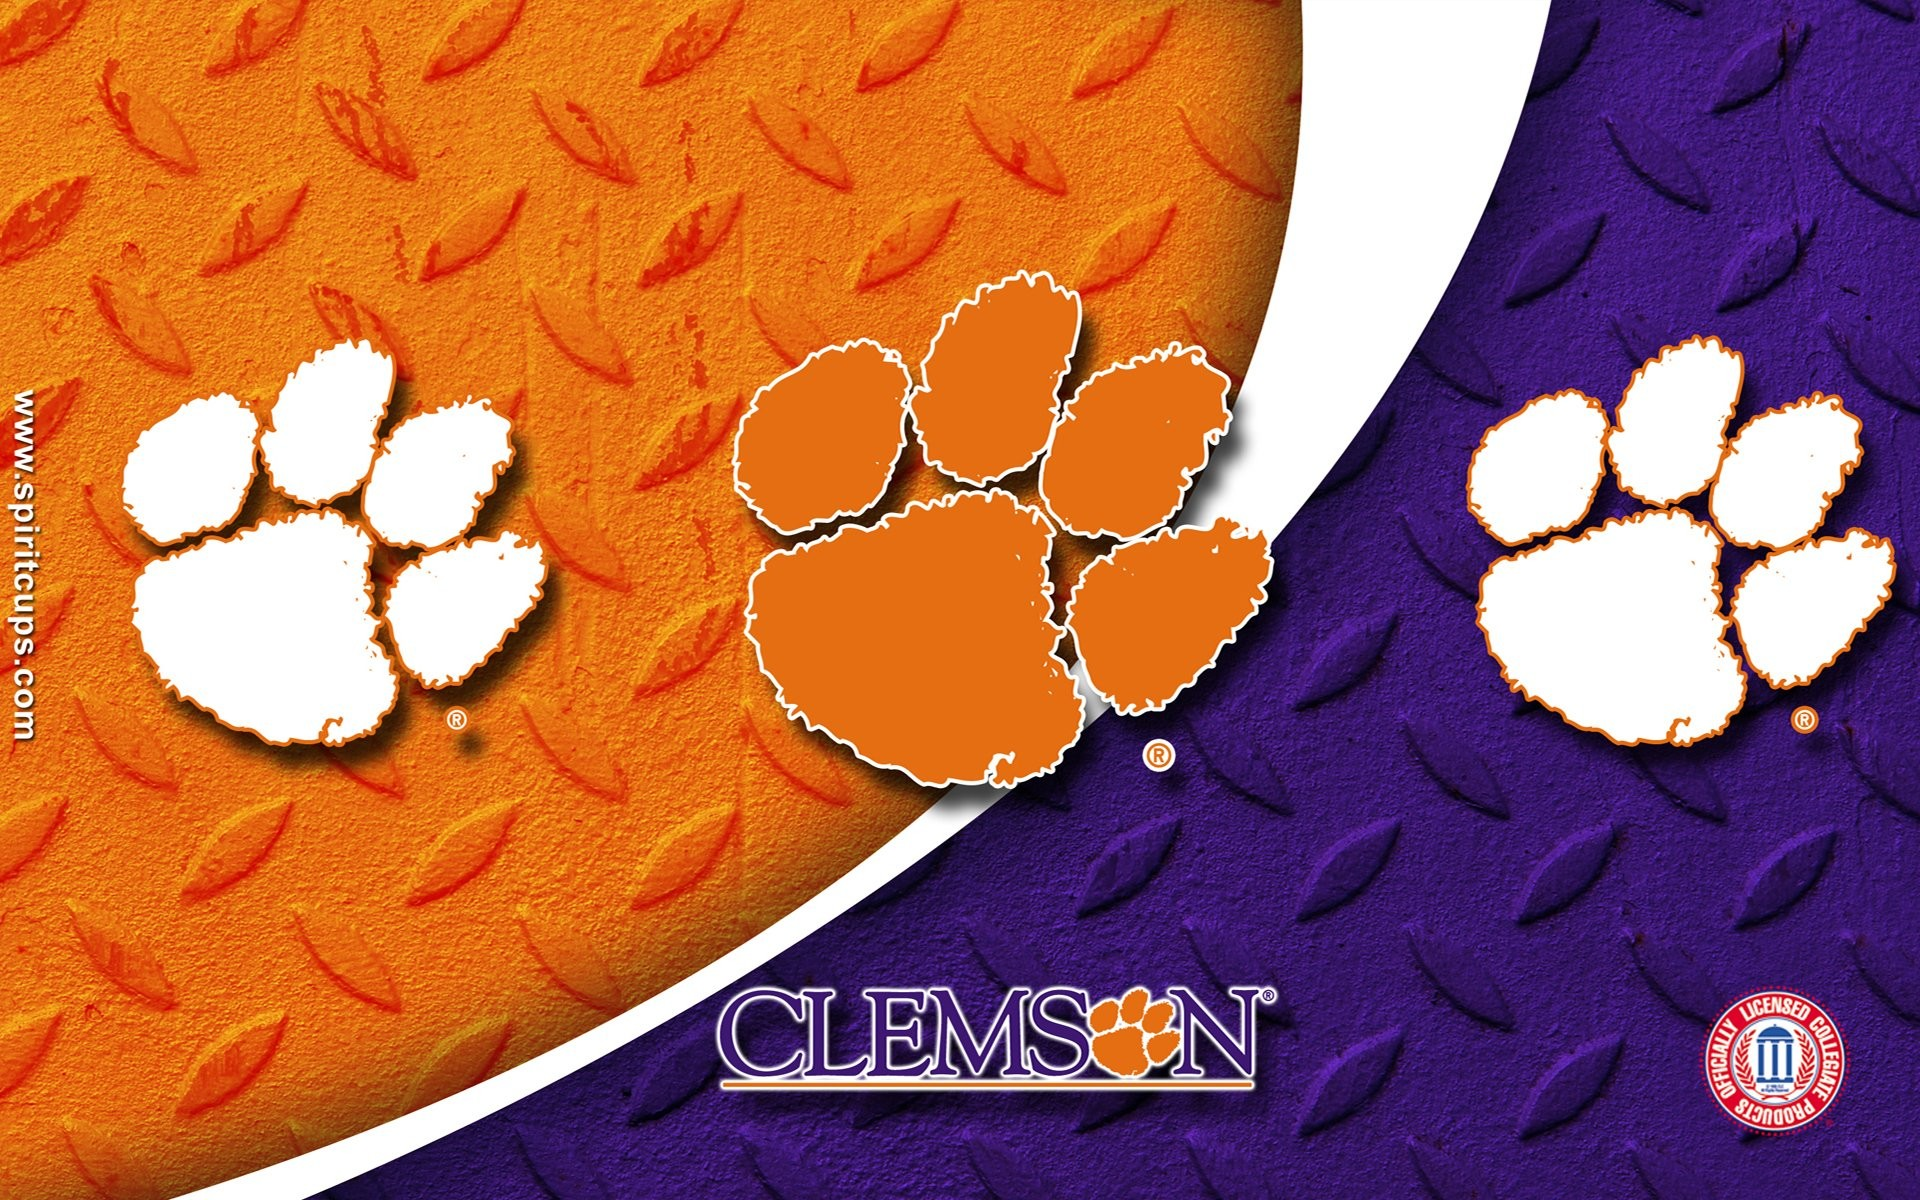 Clemson Wallpaper And Screensavers 62 Images